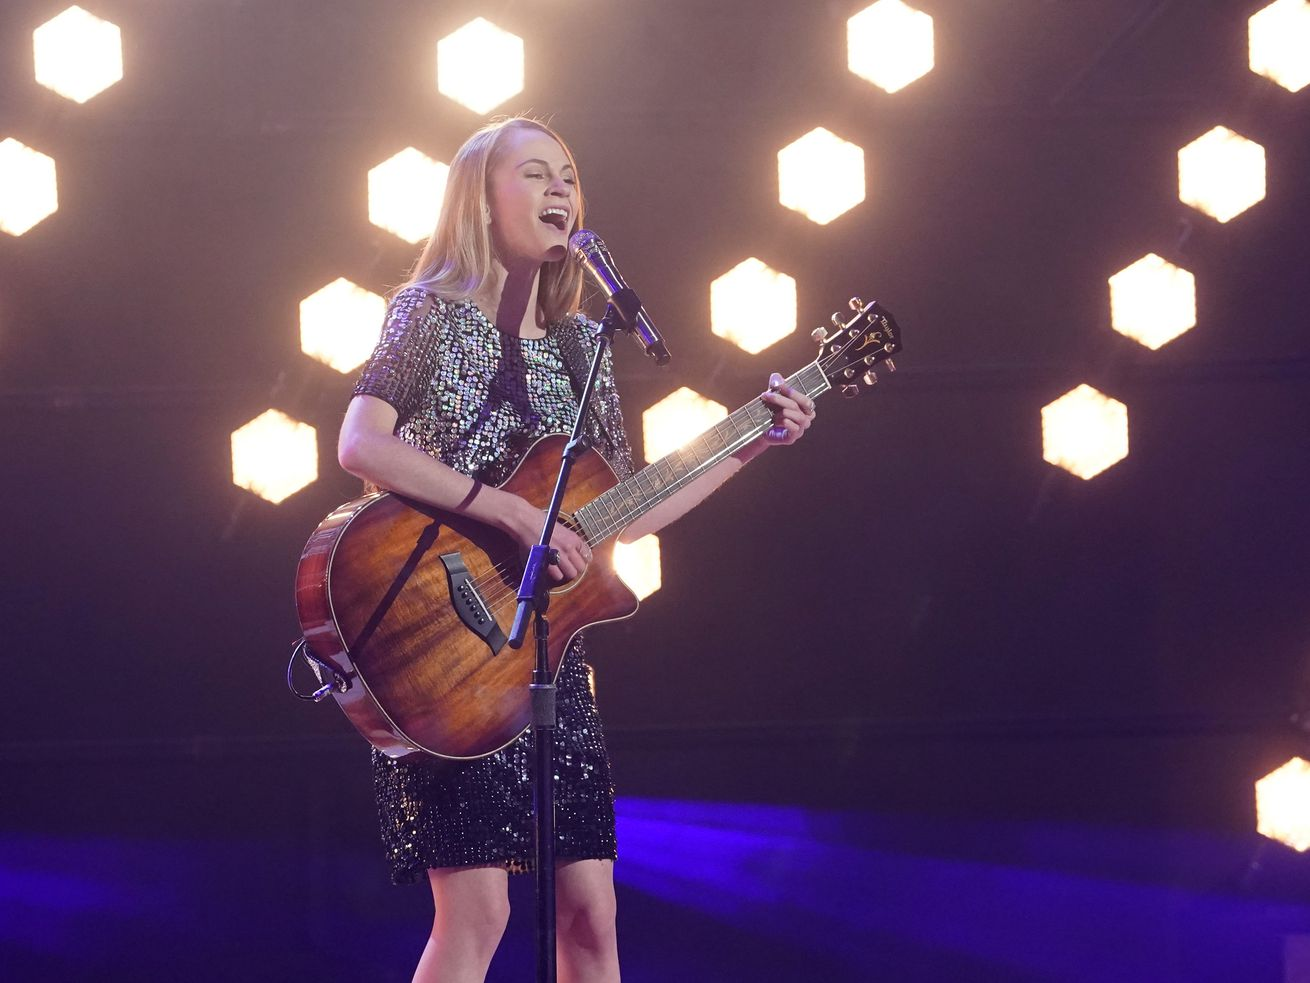 'AGT' just called this 15-year-old singer from Utah a 'young Taylor Swift.' Watch her performance here